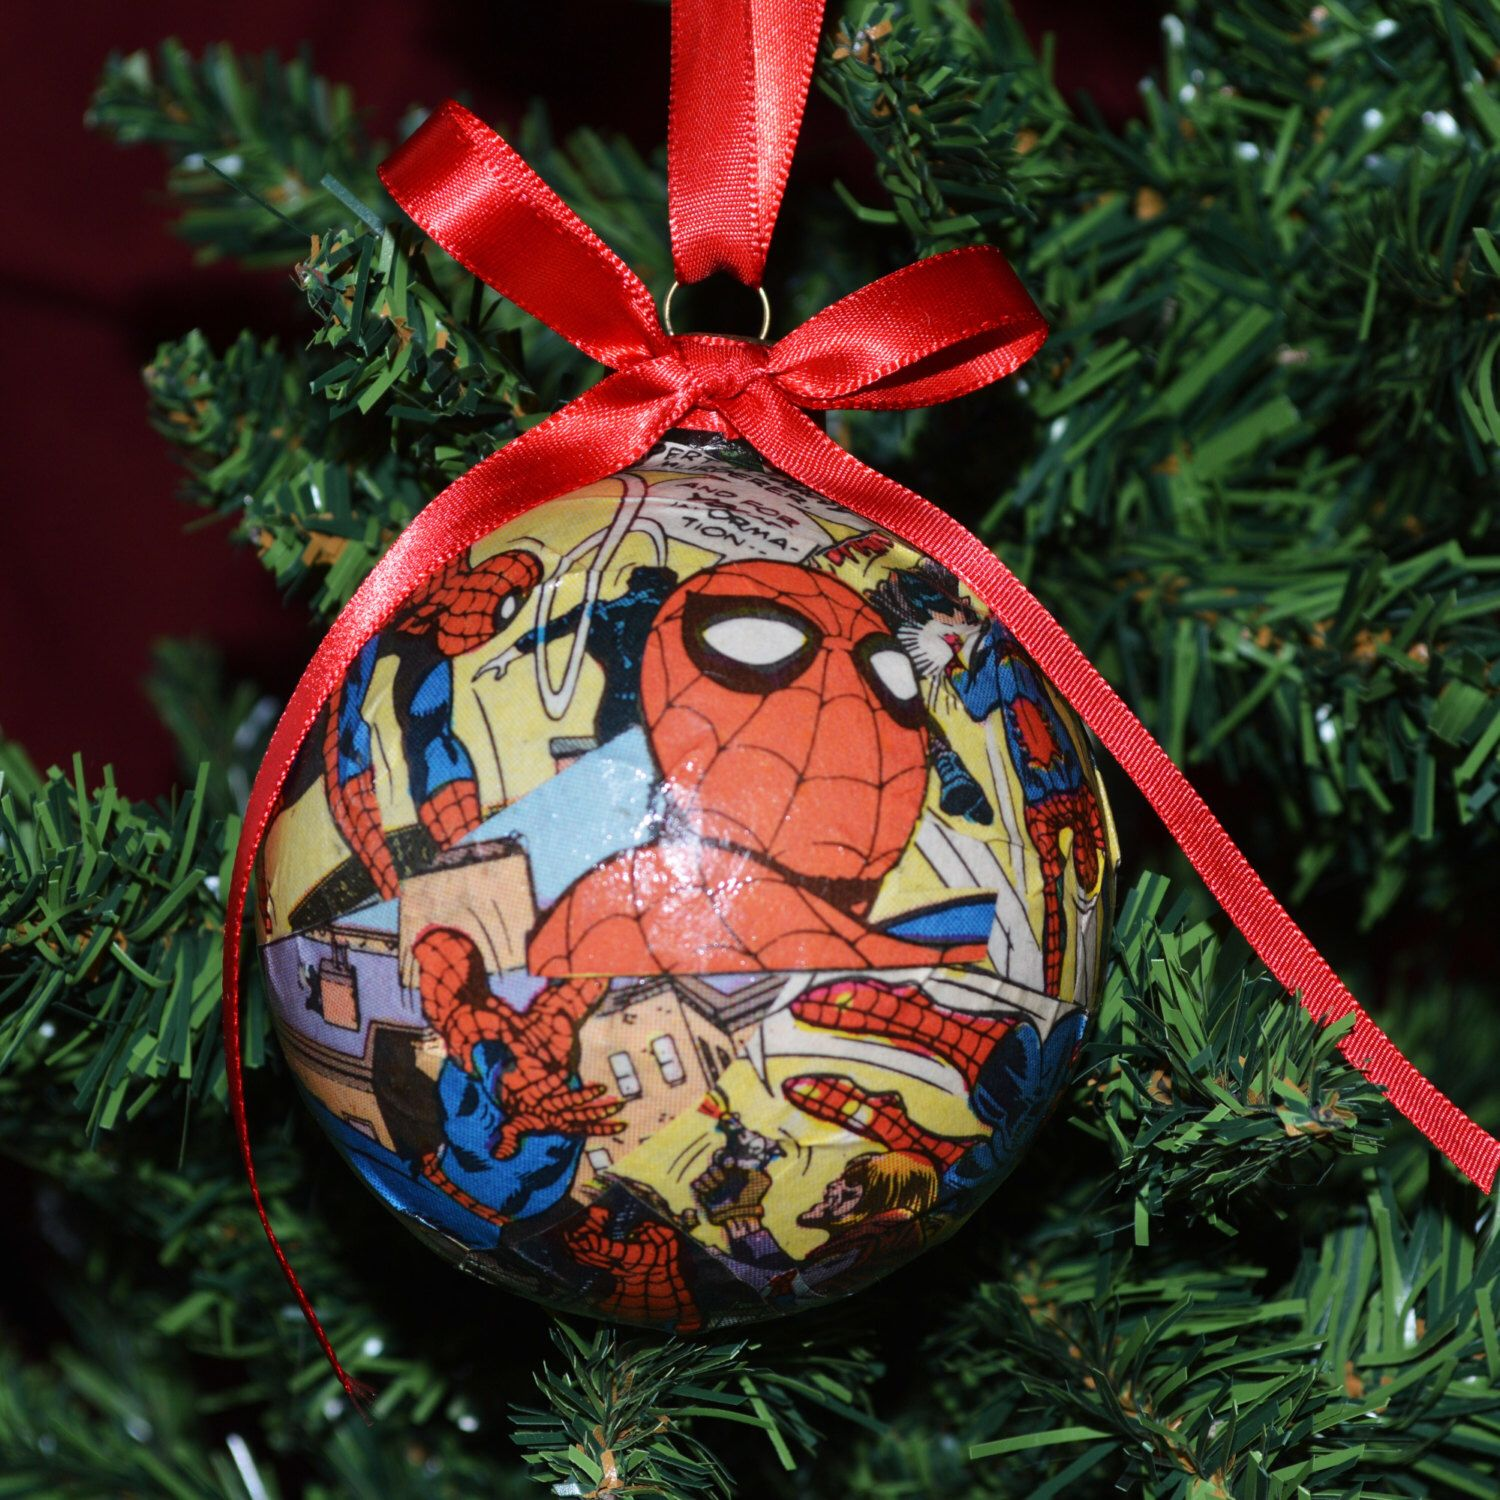 Comic Book Ornaments Spiderman Ornaments Christmas Etsy Diy Christmas Ornaments Christmas Ornaments Geek Christmas